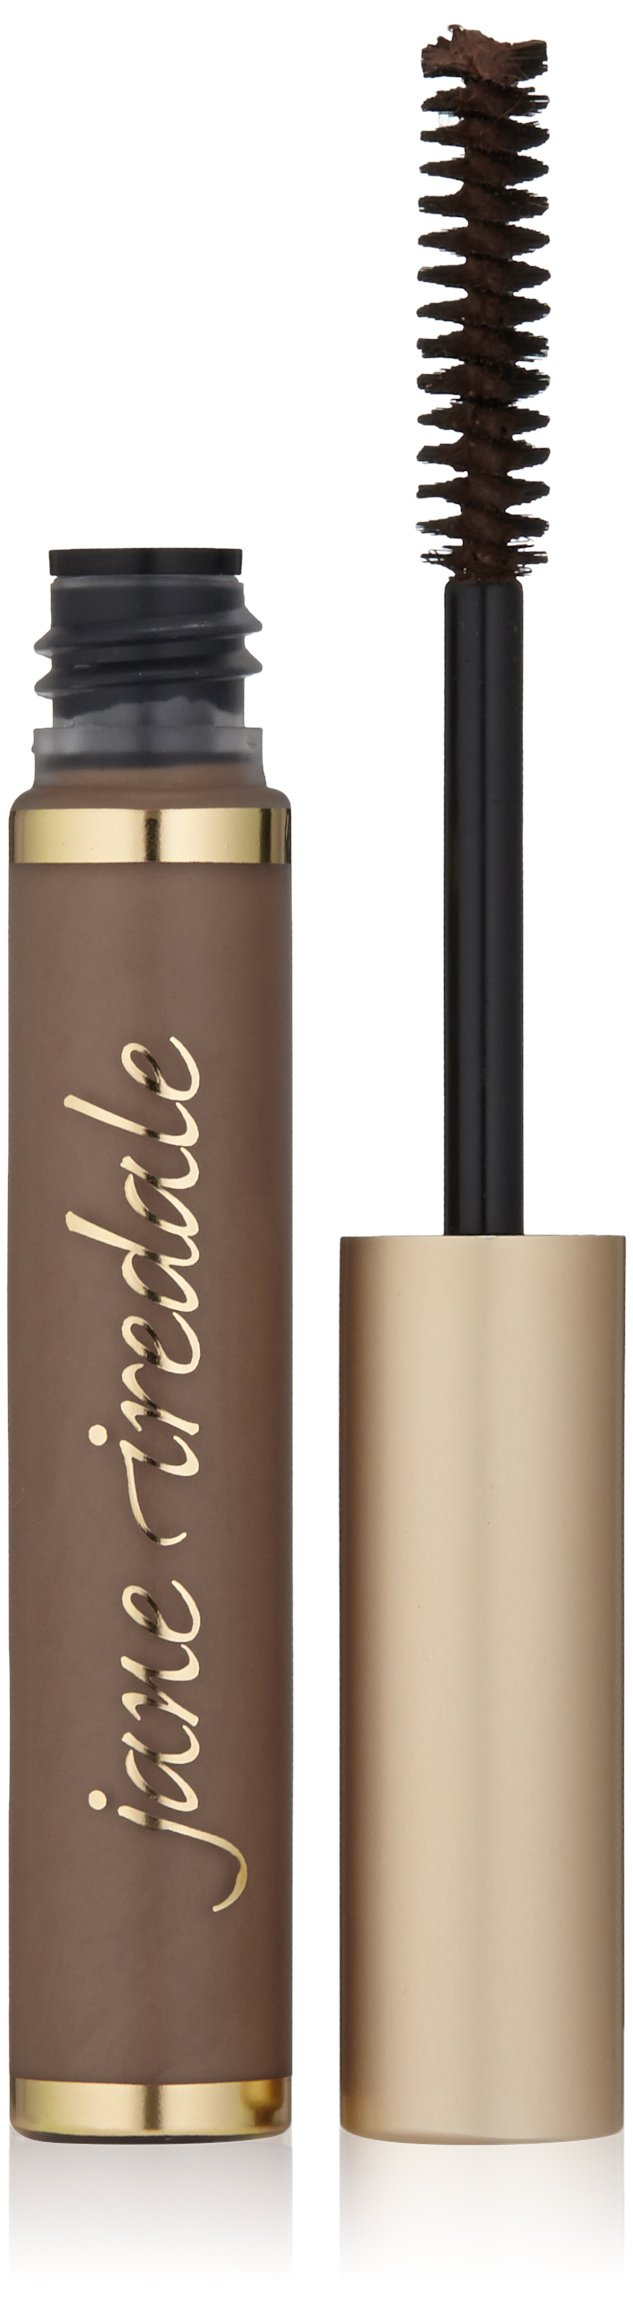 jane iredale PureBrow Brow Gel, Blonde, 0.17 oz.